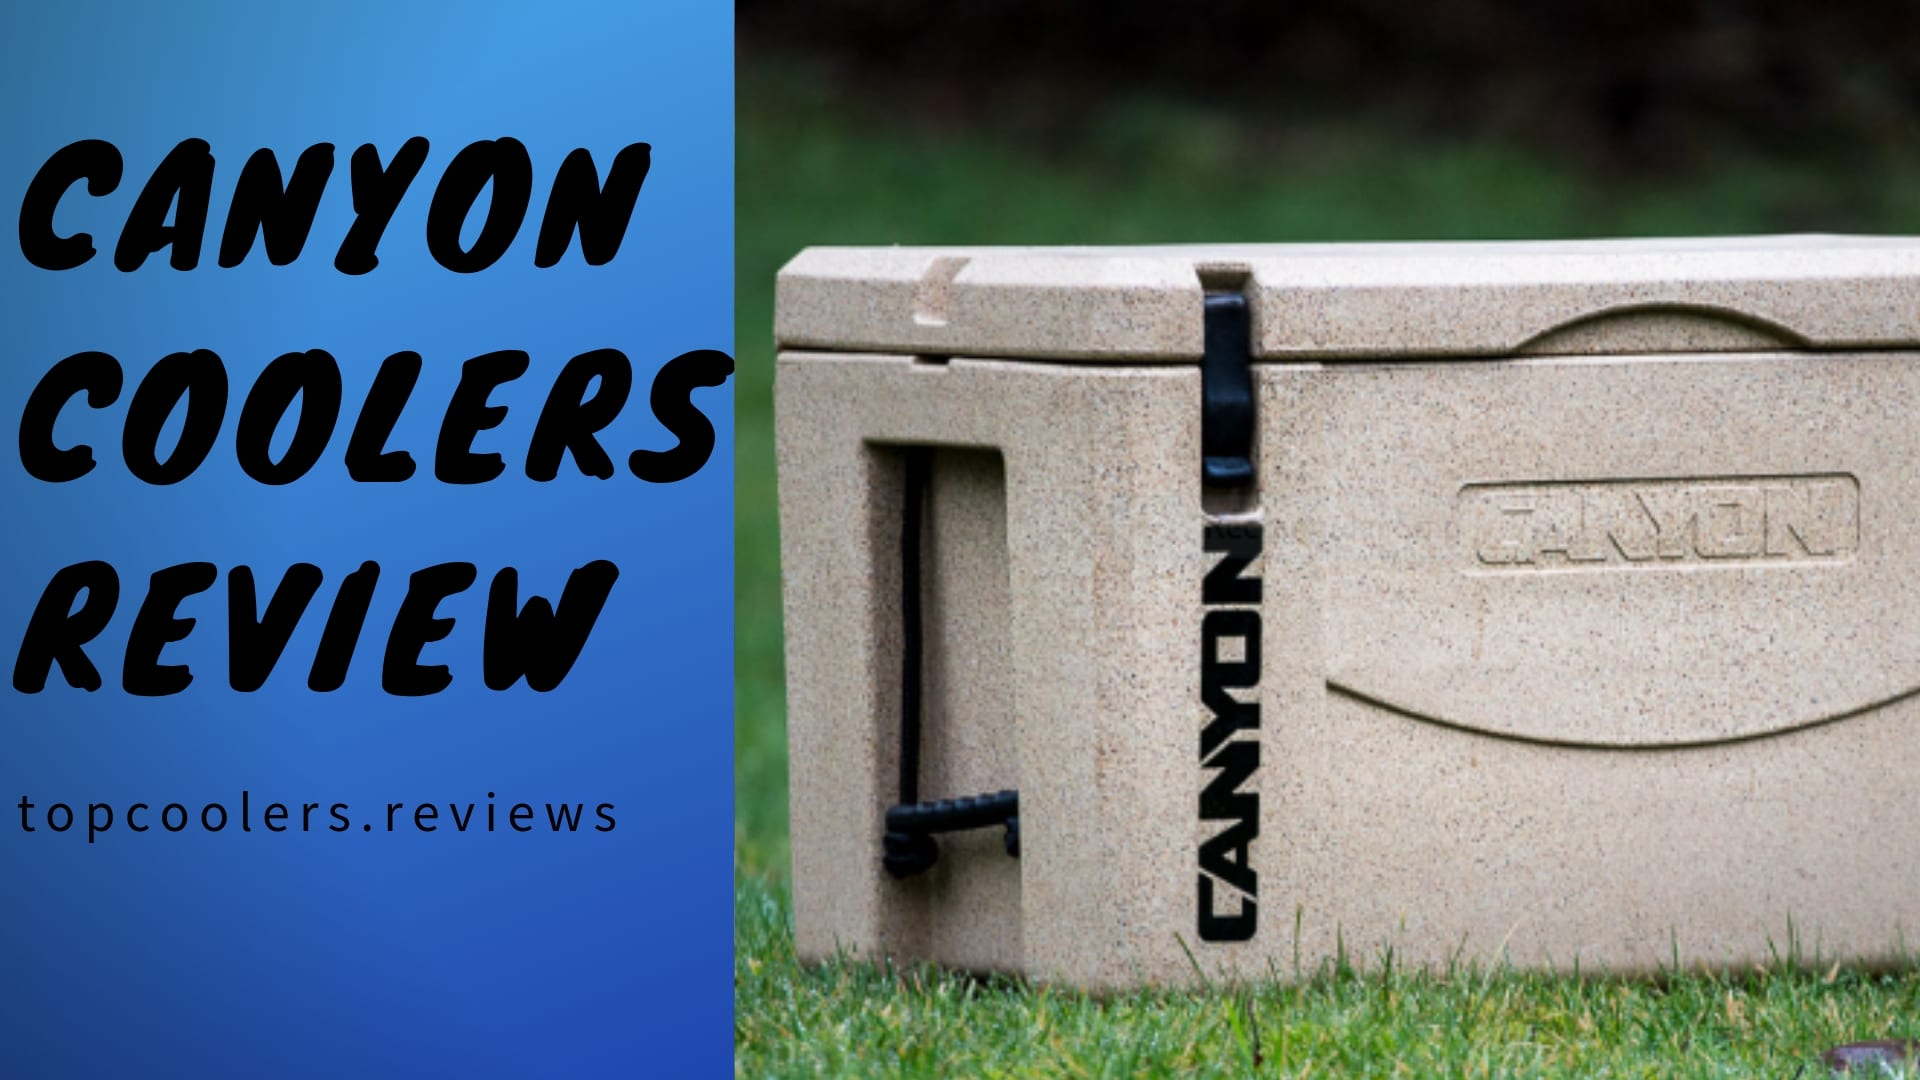 Canyon Cooler, Canyon Coolers review